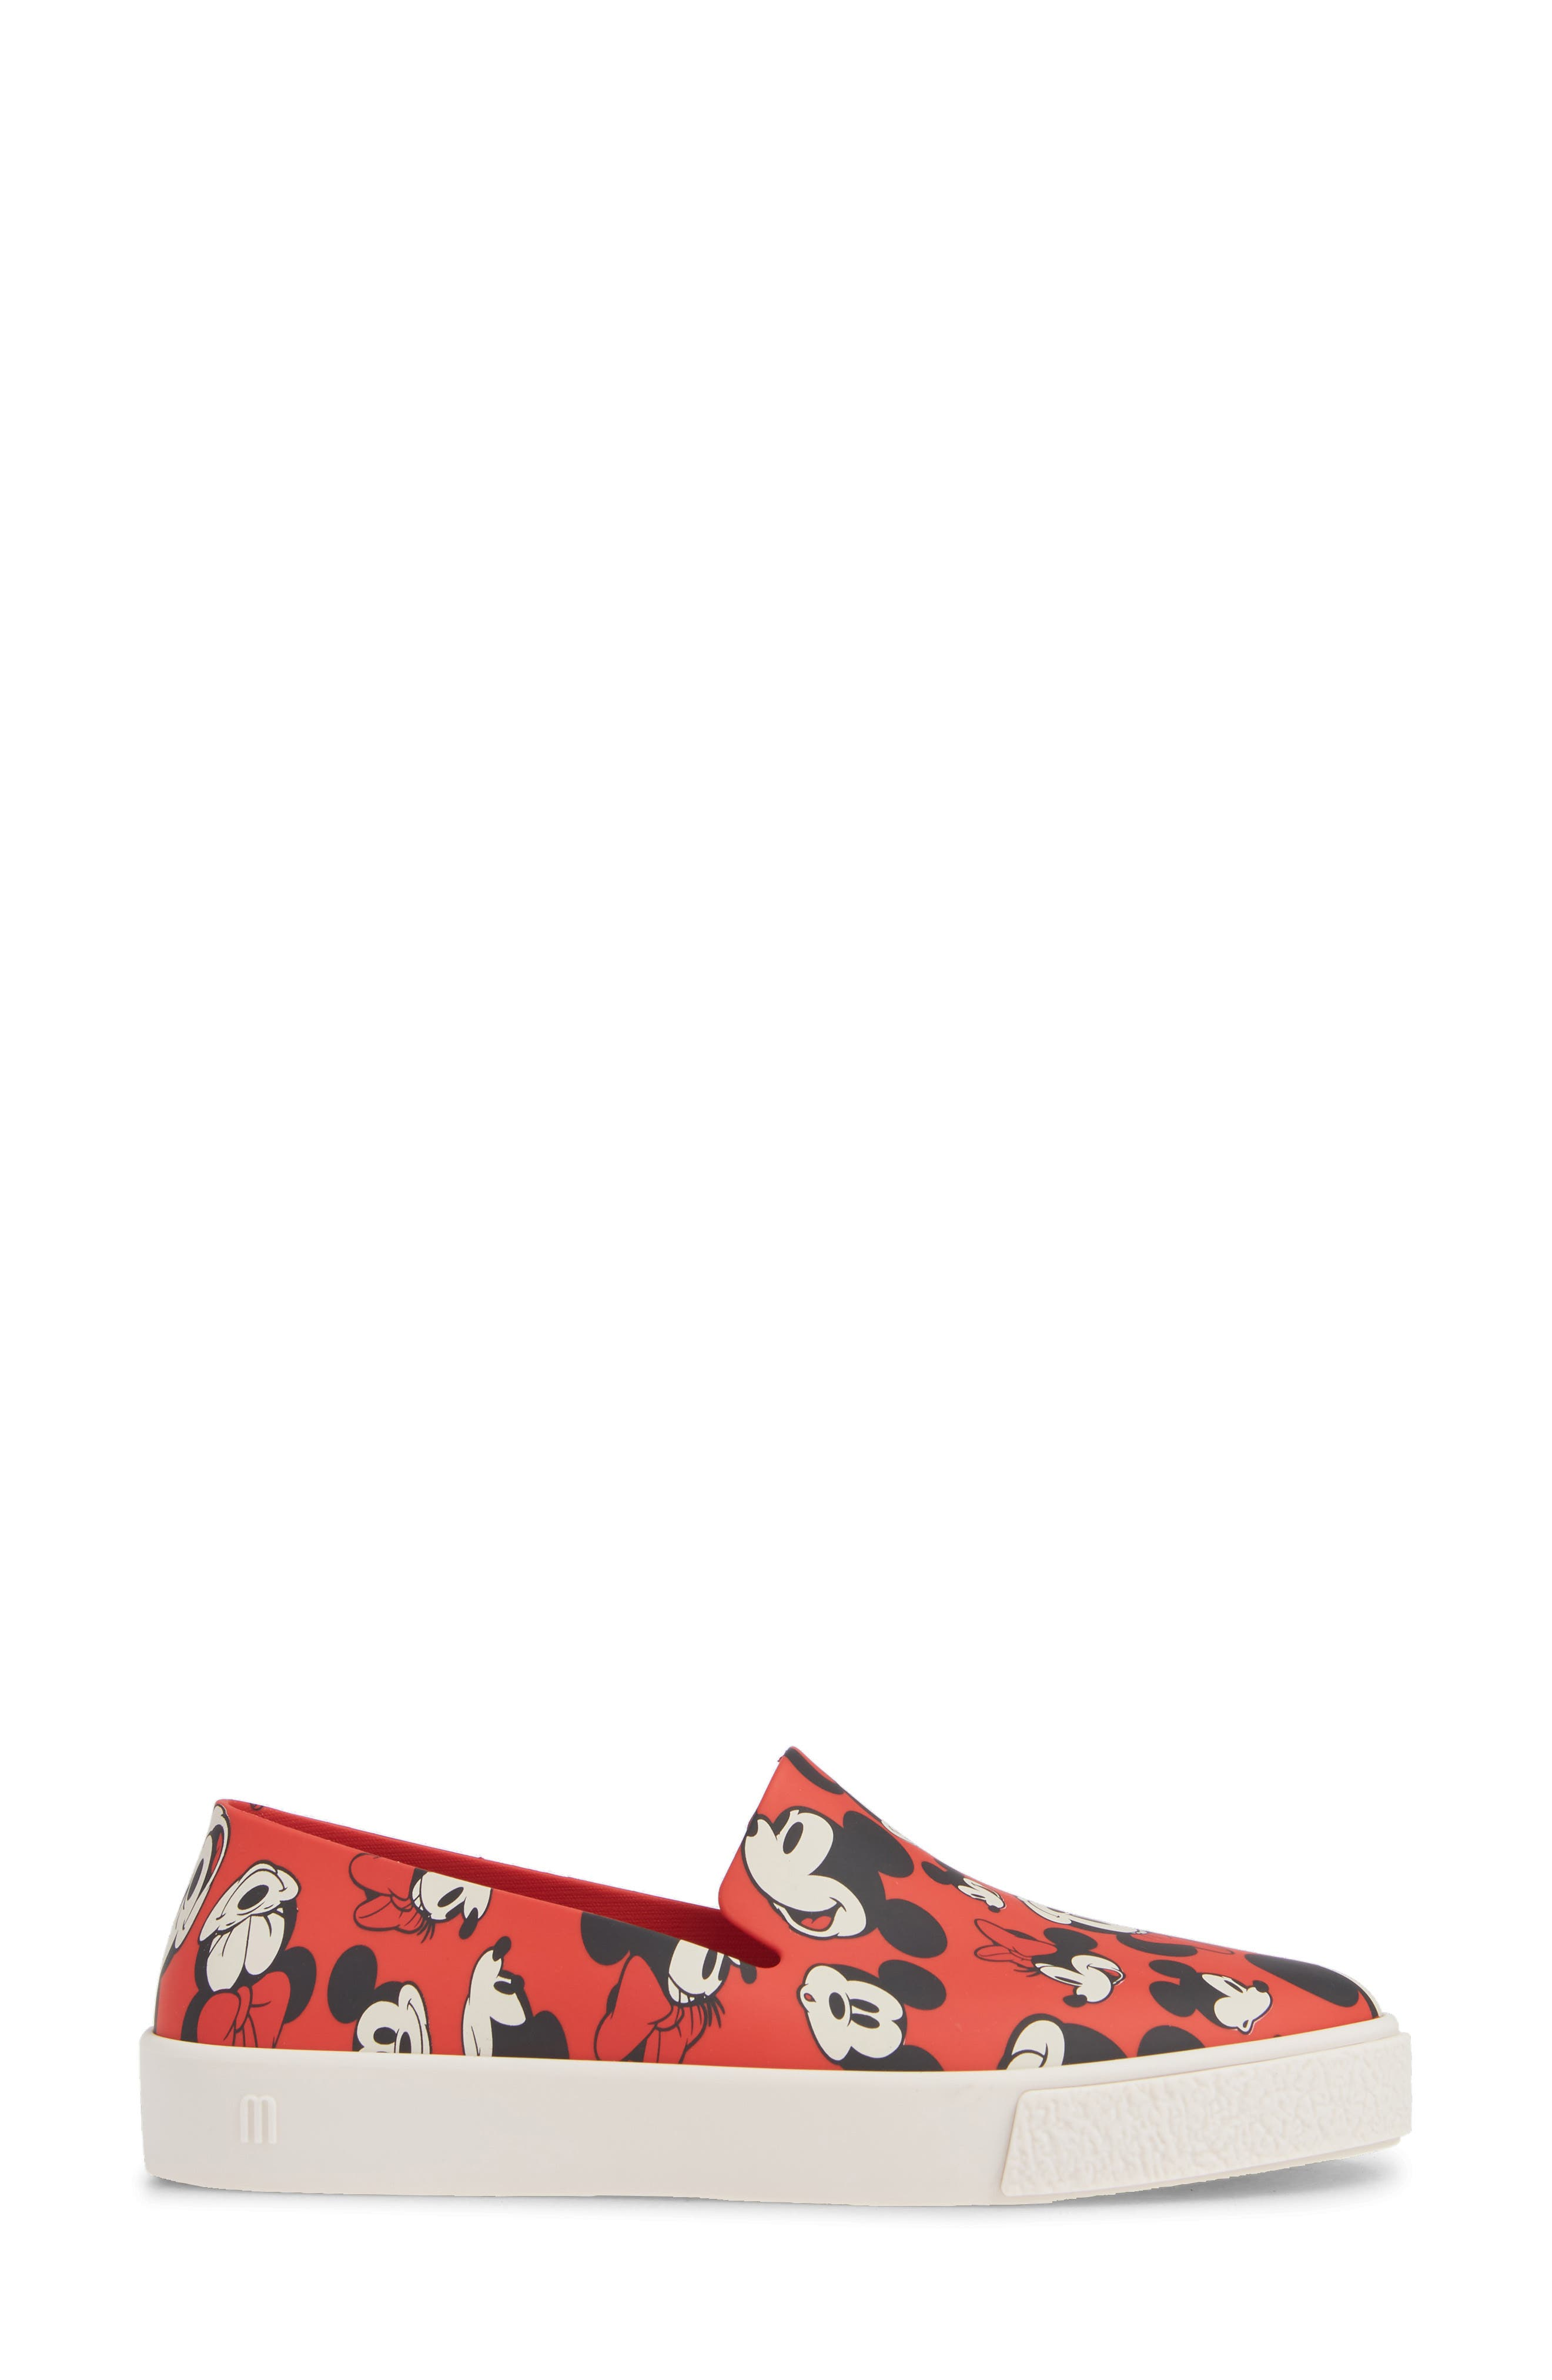 Ground Mickey Mouse Slip-On Sneaker,                             Alternate thumbnail 3, color,                             RED/ WHITE FABRIC